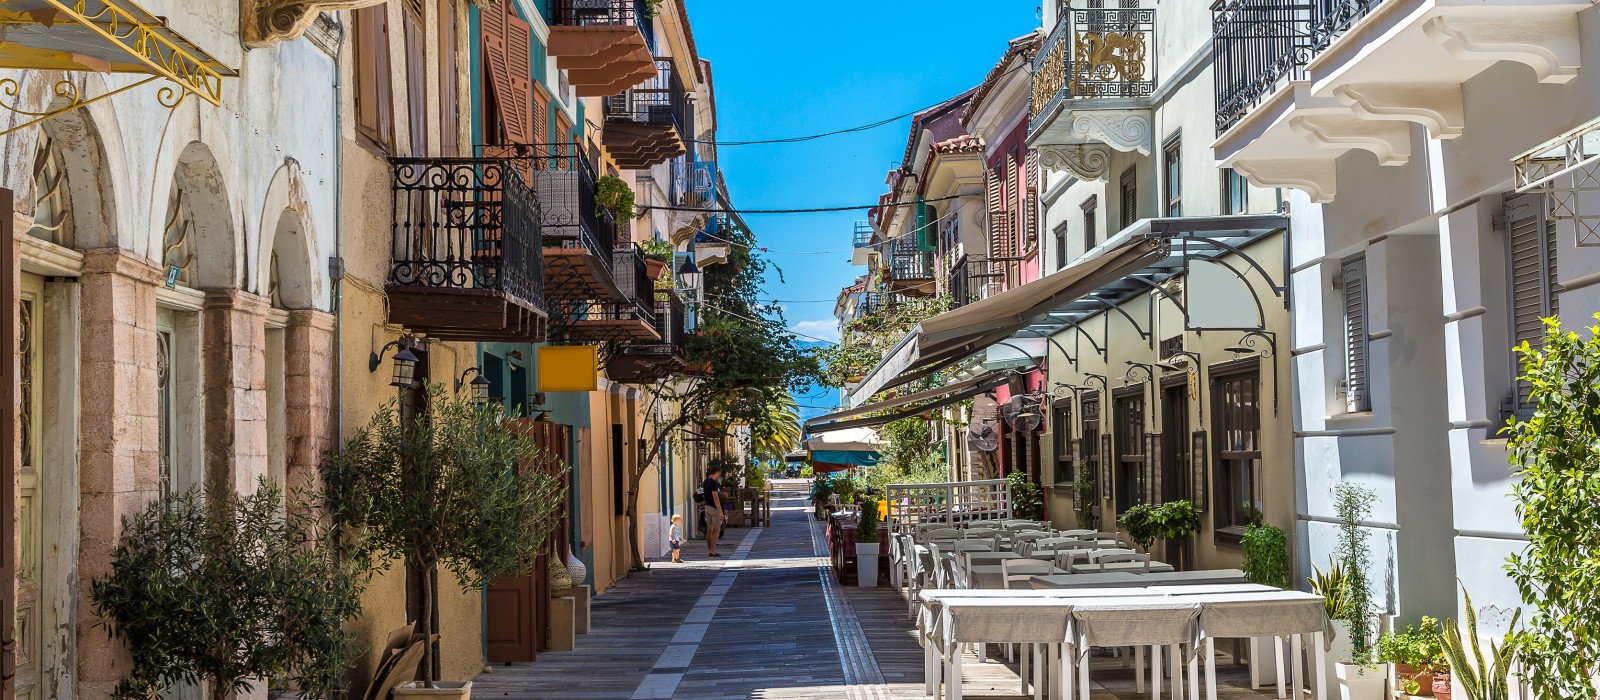 Destination Nafplio Greece